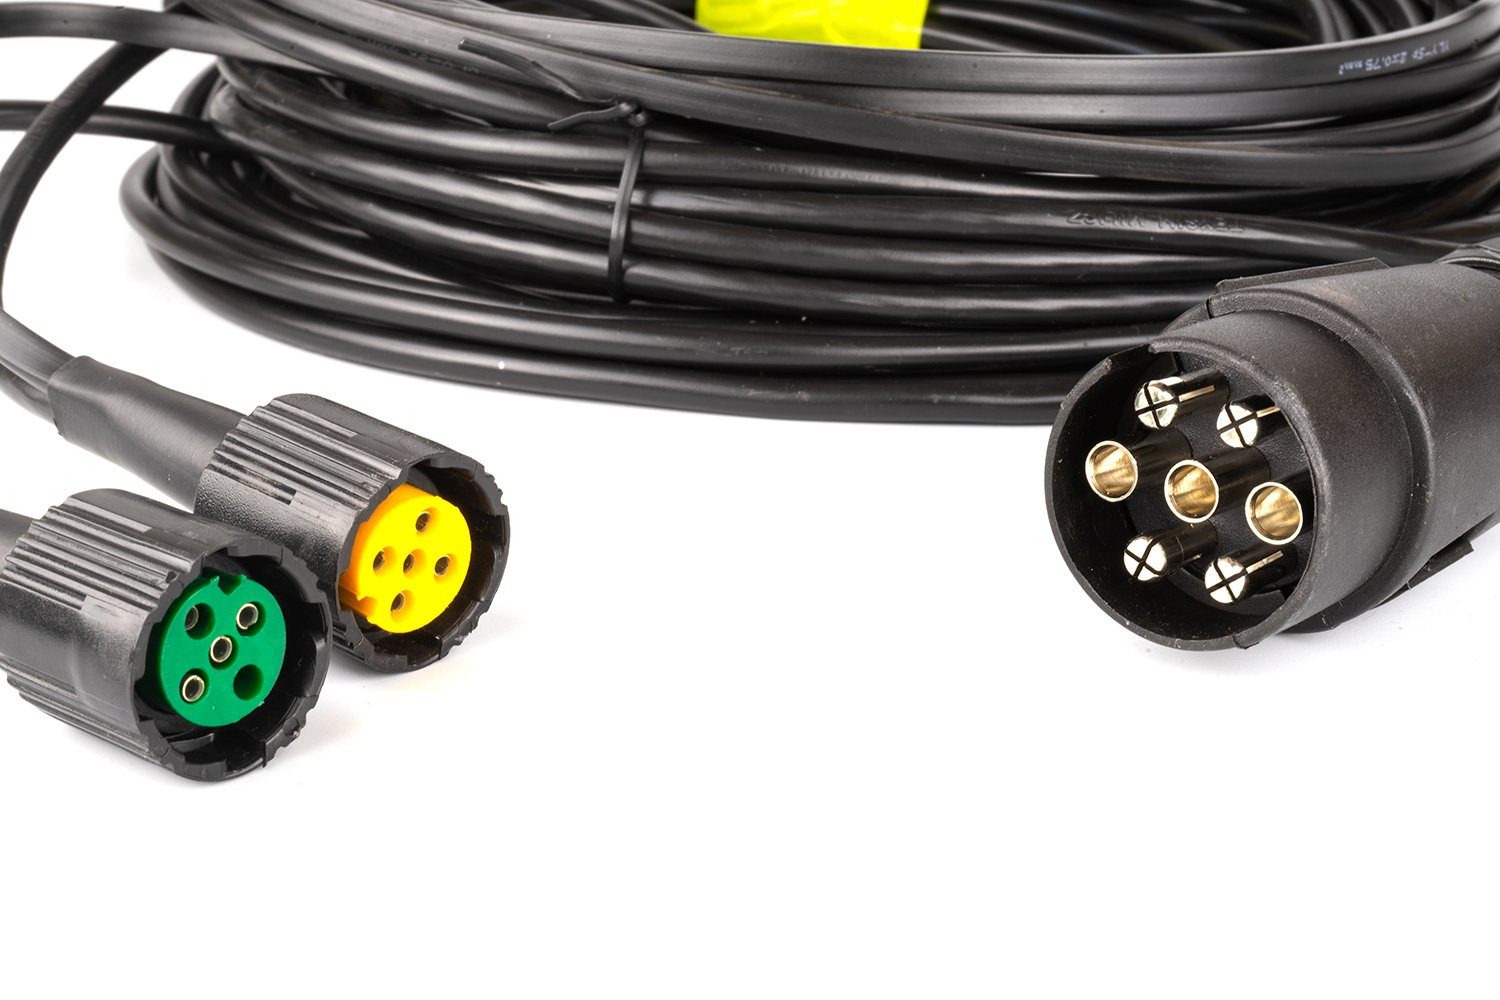 Wiring harness for light trailers 3015 bajonet 5 pin plus 7 pin on